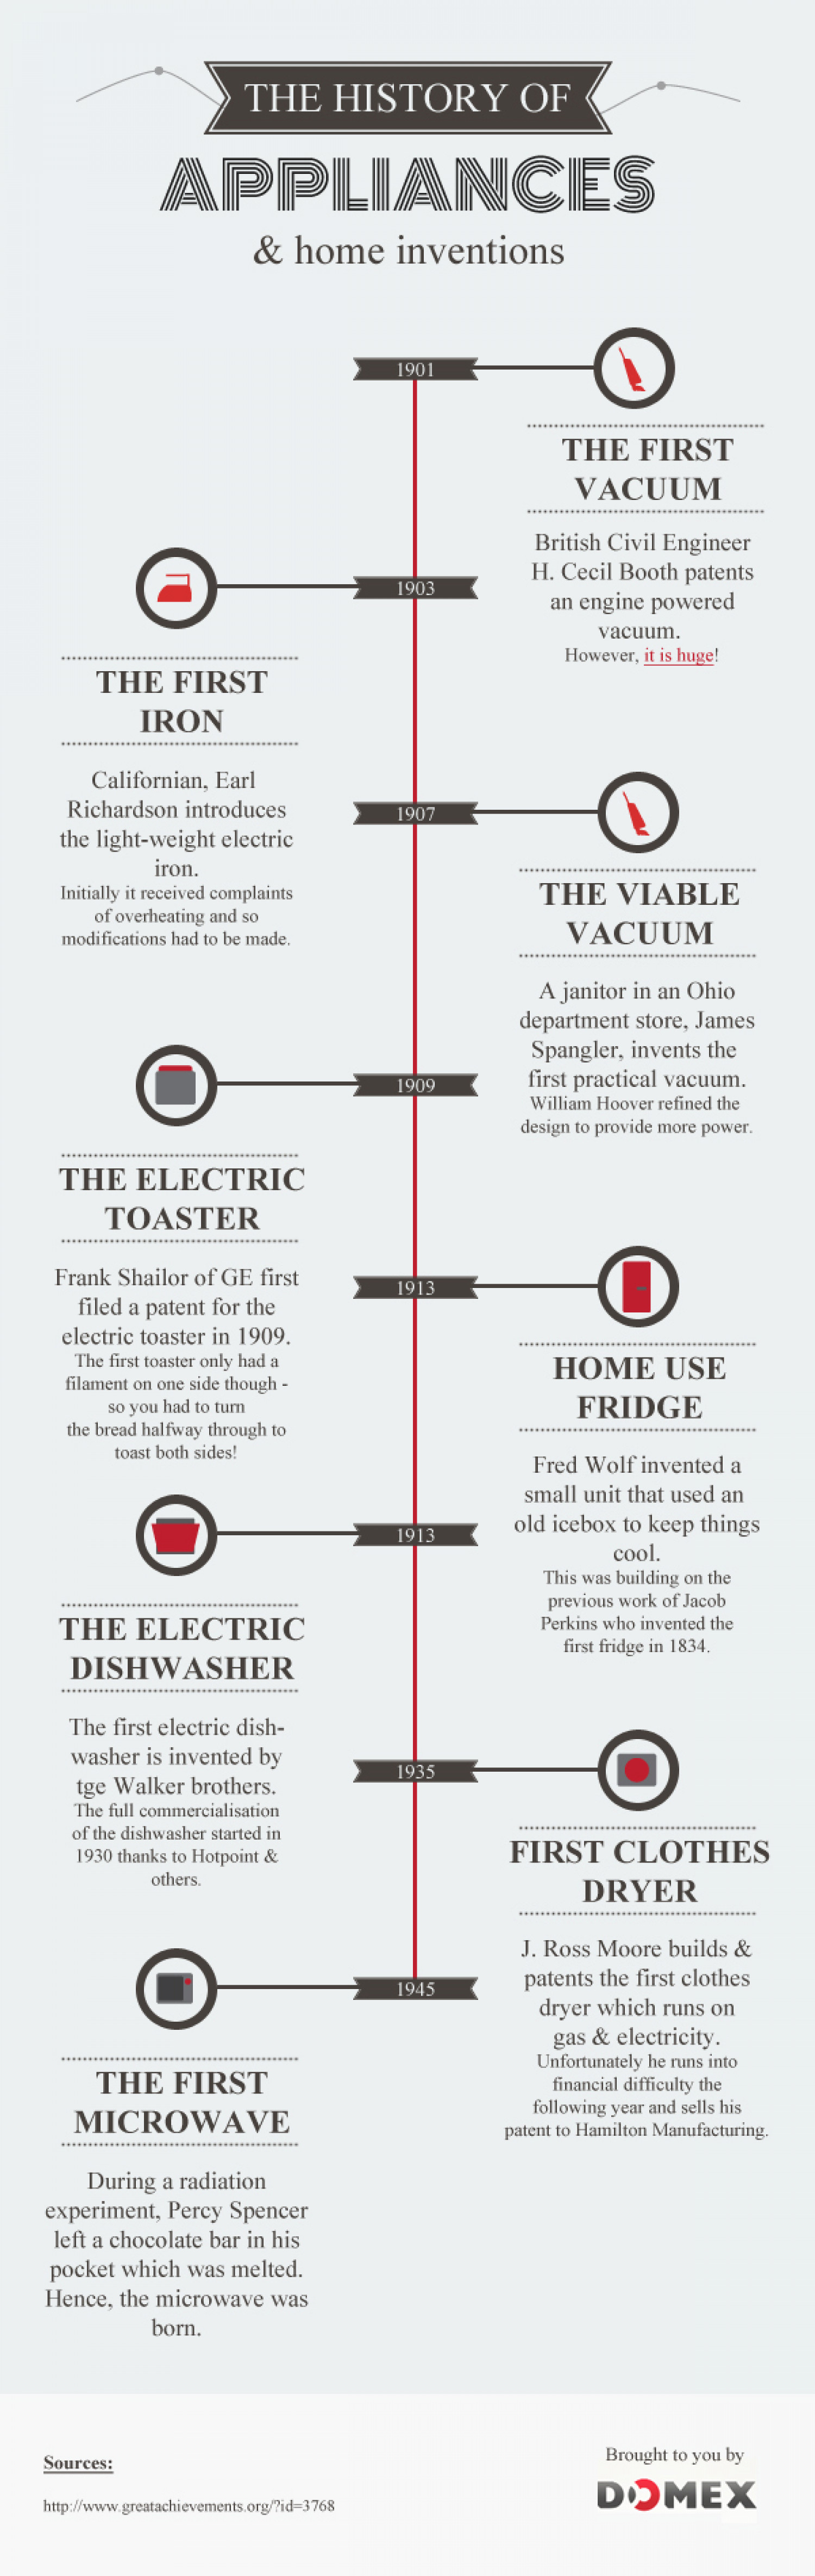 The History of Appliances & Home Inventions | Visual.ly